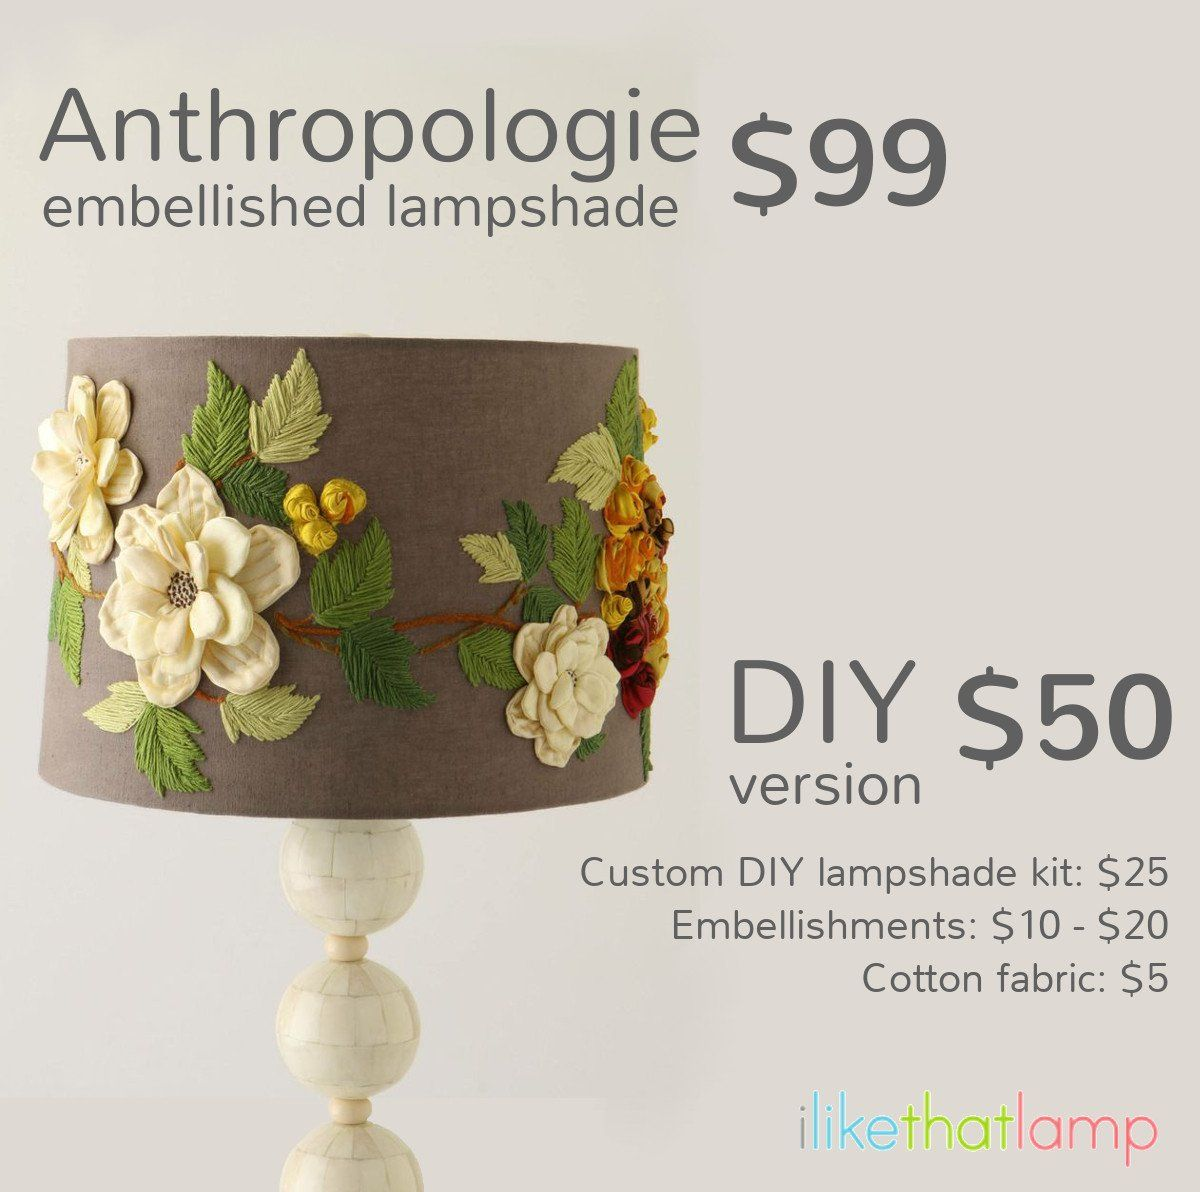 Get the Look for Less: Designer Lampshades. See more DIY lamp tips and tutorials at http://ilikethatlamp.com